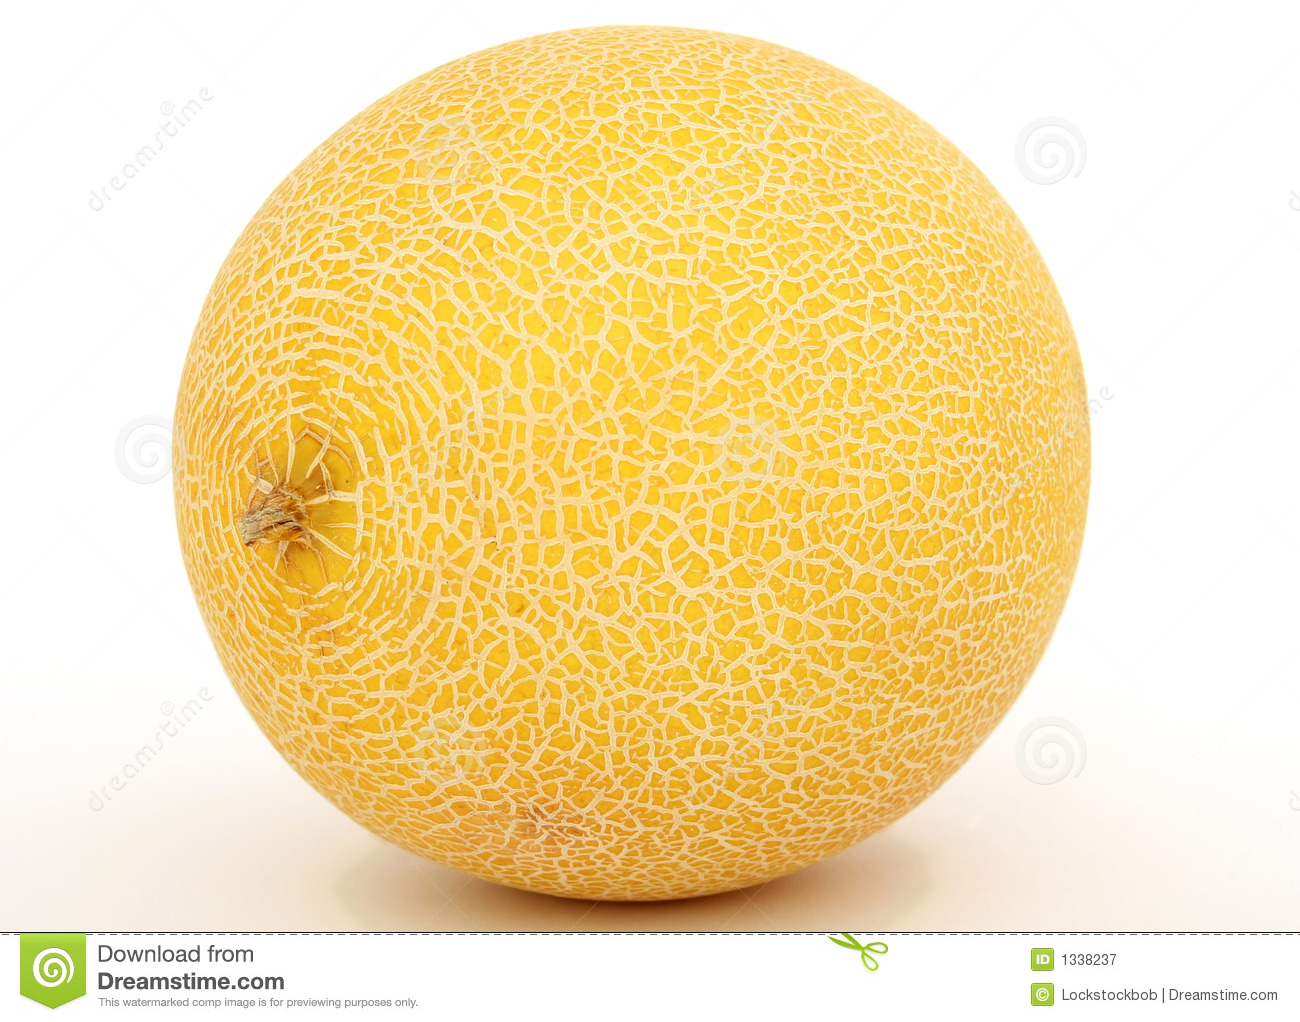 Healthy Fruit Melon Royalty Free Stock Photography - Image: 1338237